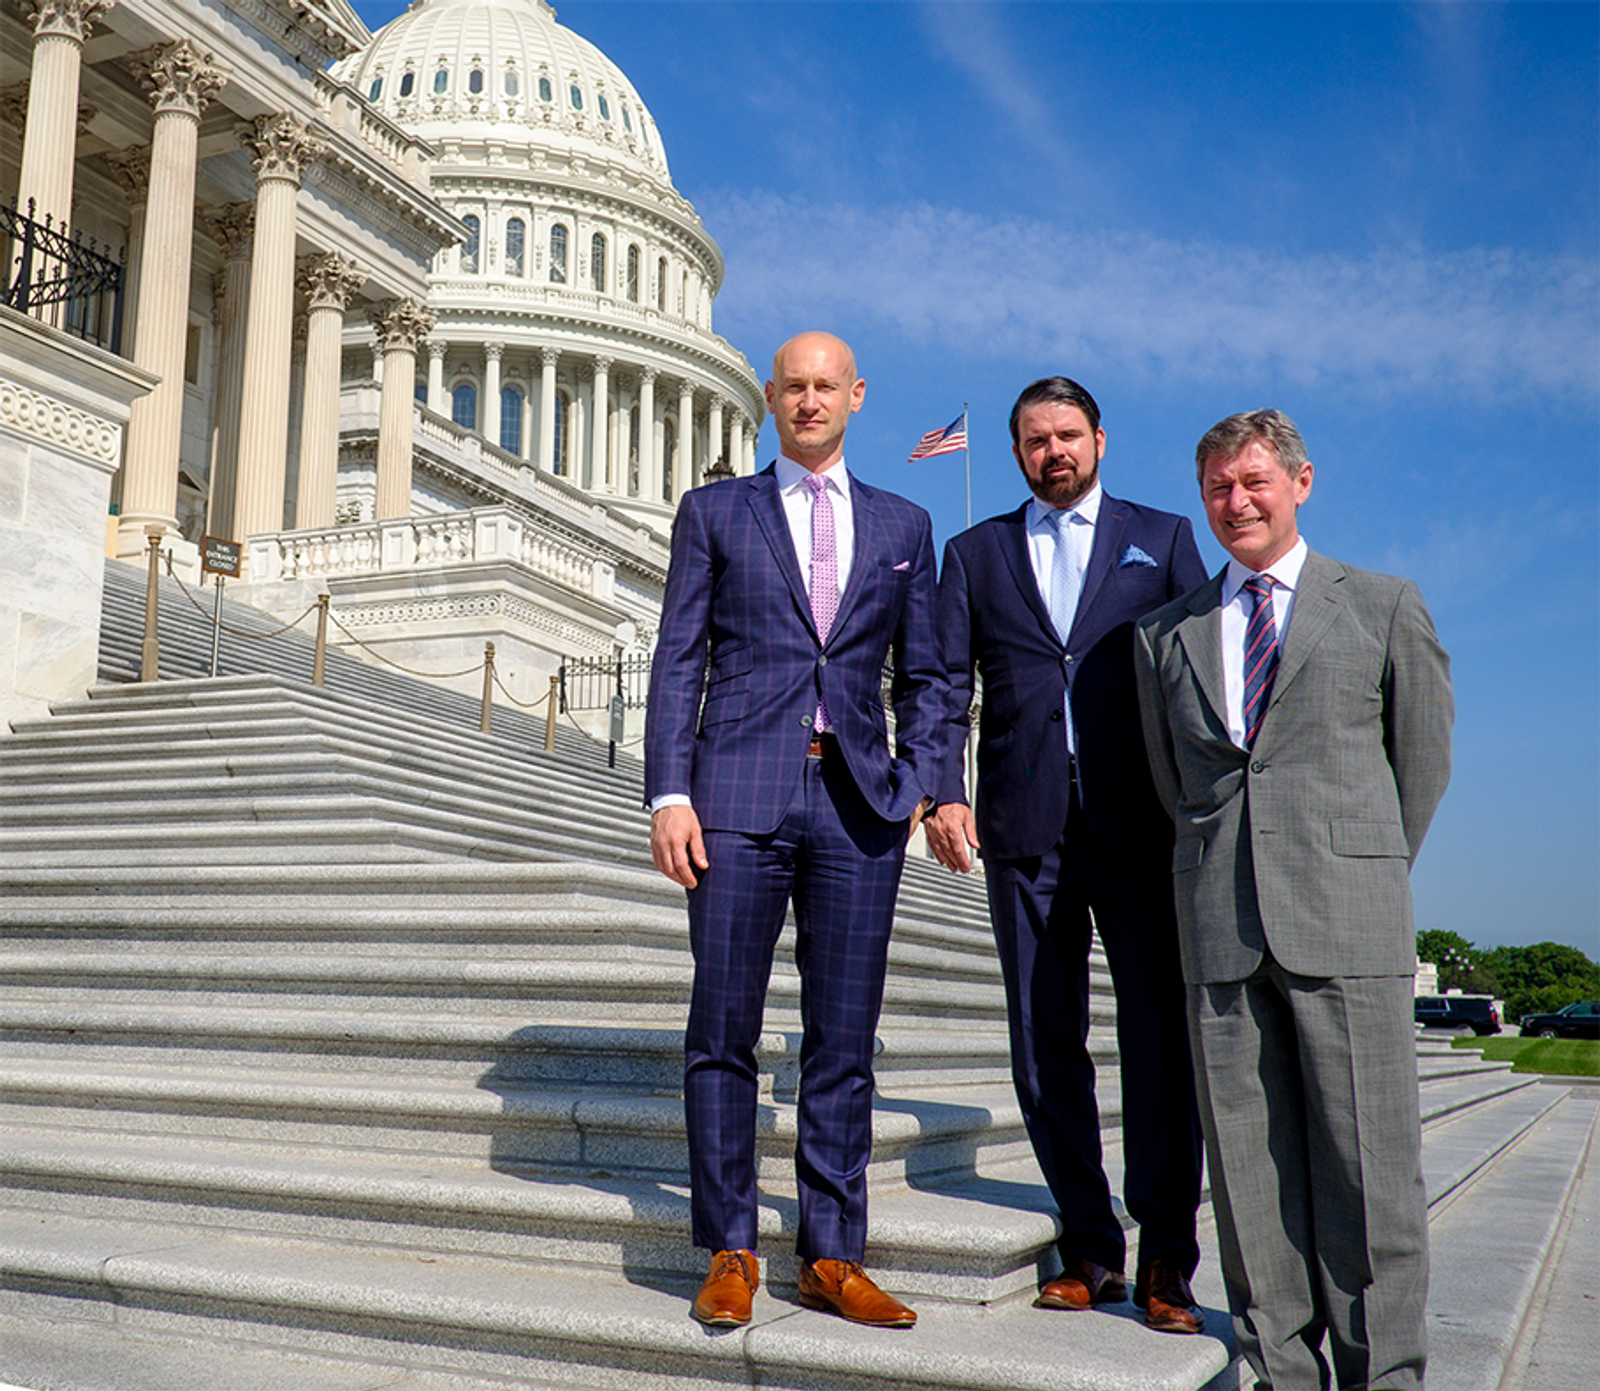 vestwell visits dc to talk 401k and tax reform with congress